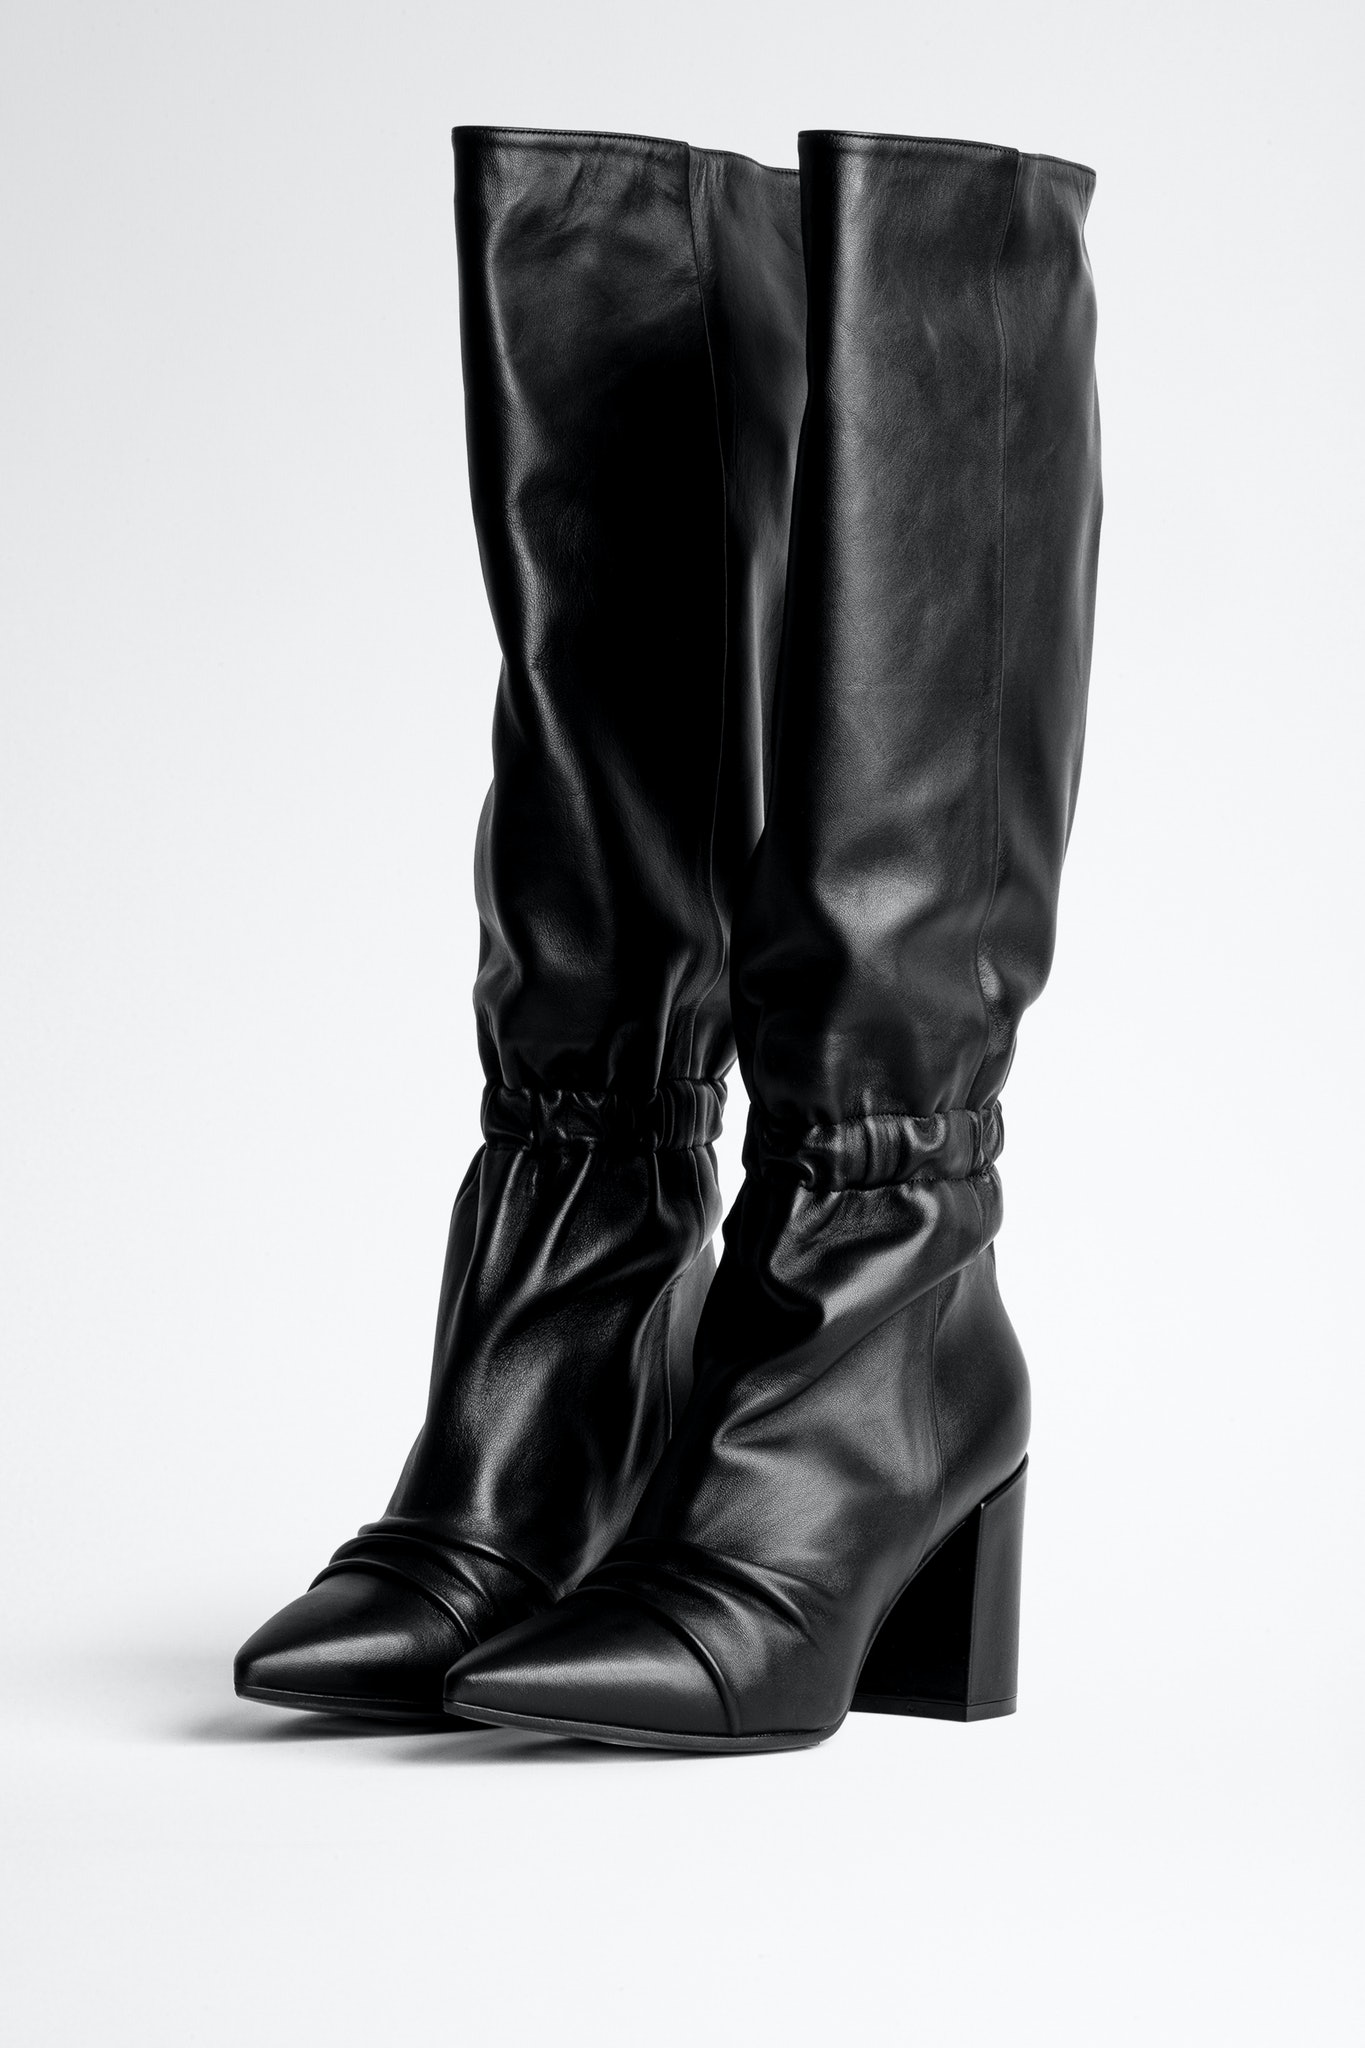 Glimmer Boots